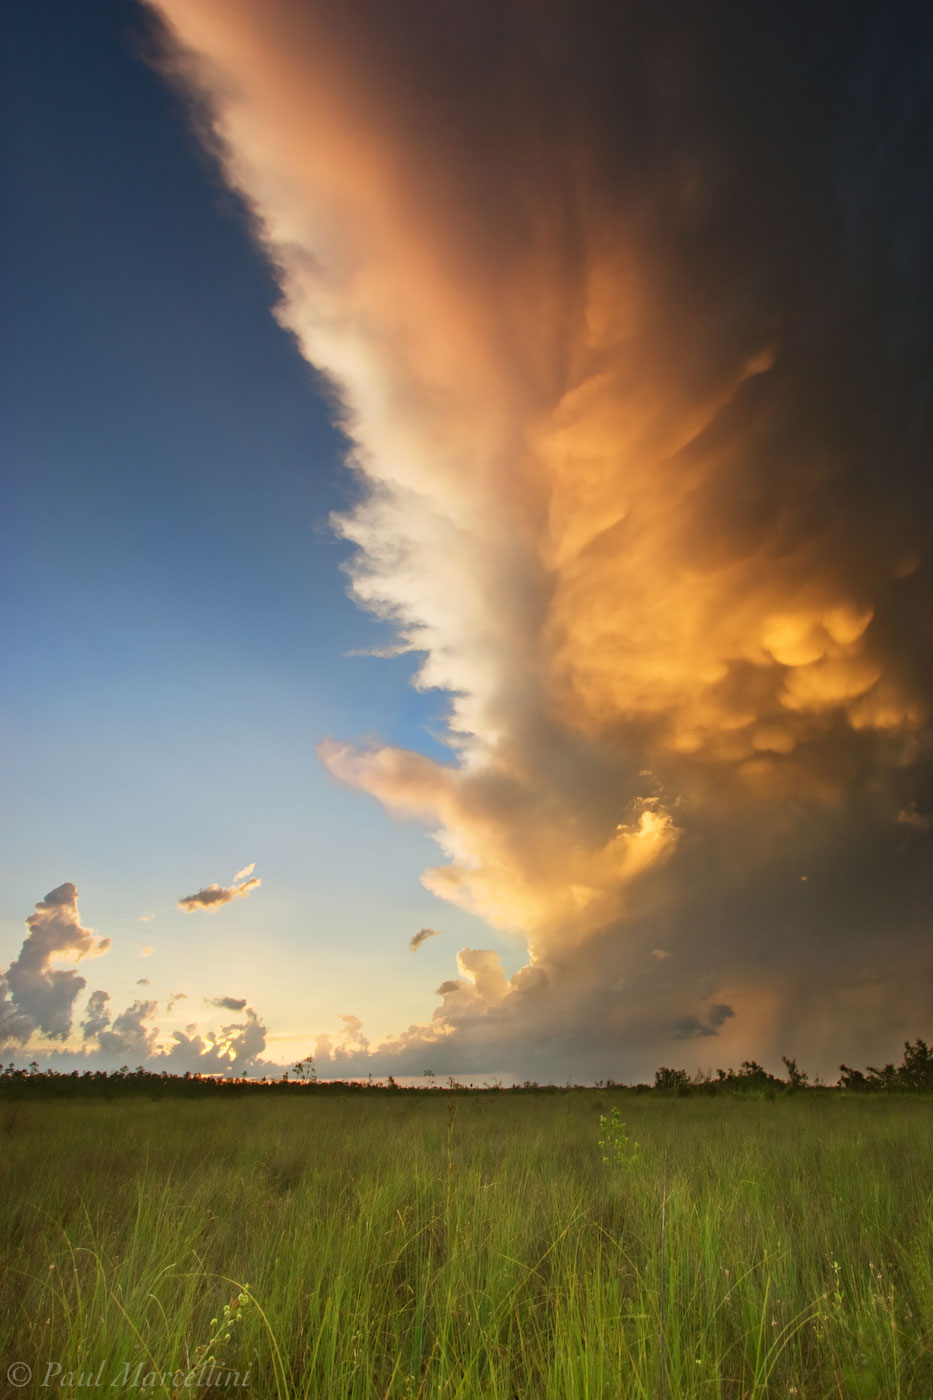 storm, everglades, sunset, Florida, nature, photography, florida national parks, photo